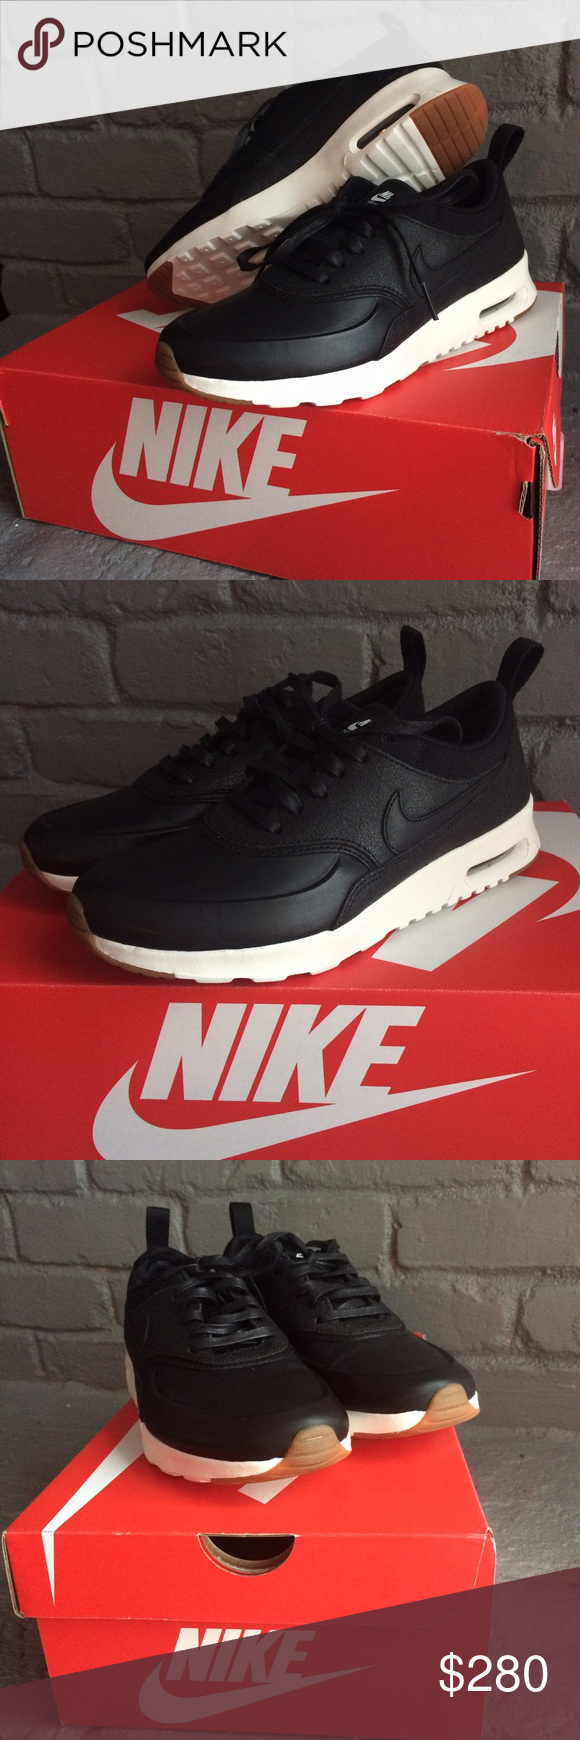 20eefbebe8c RARE Nike Air Max Thea Limited Edition Dead stock RARE LIMITED EDITION Nike  Air Max Thea